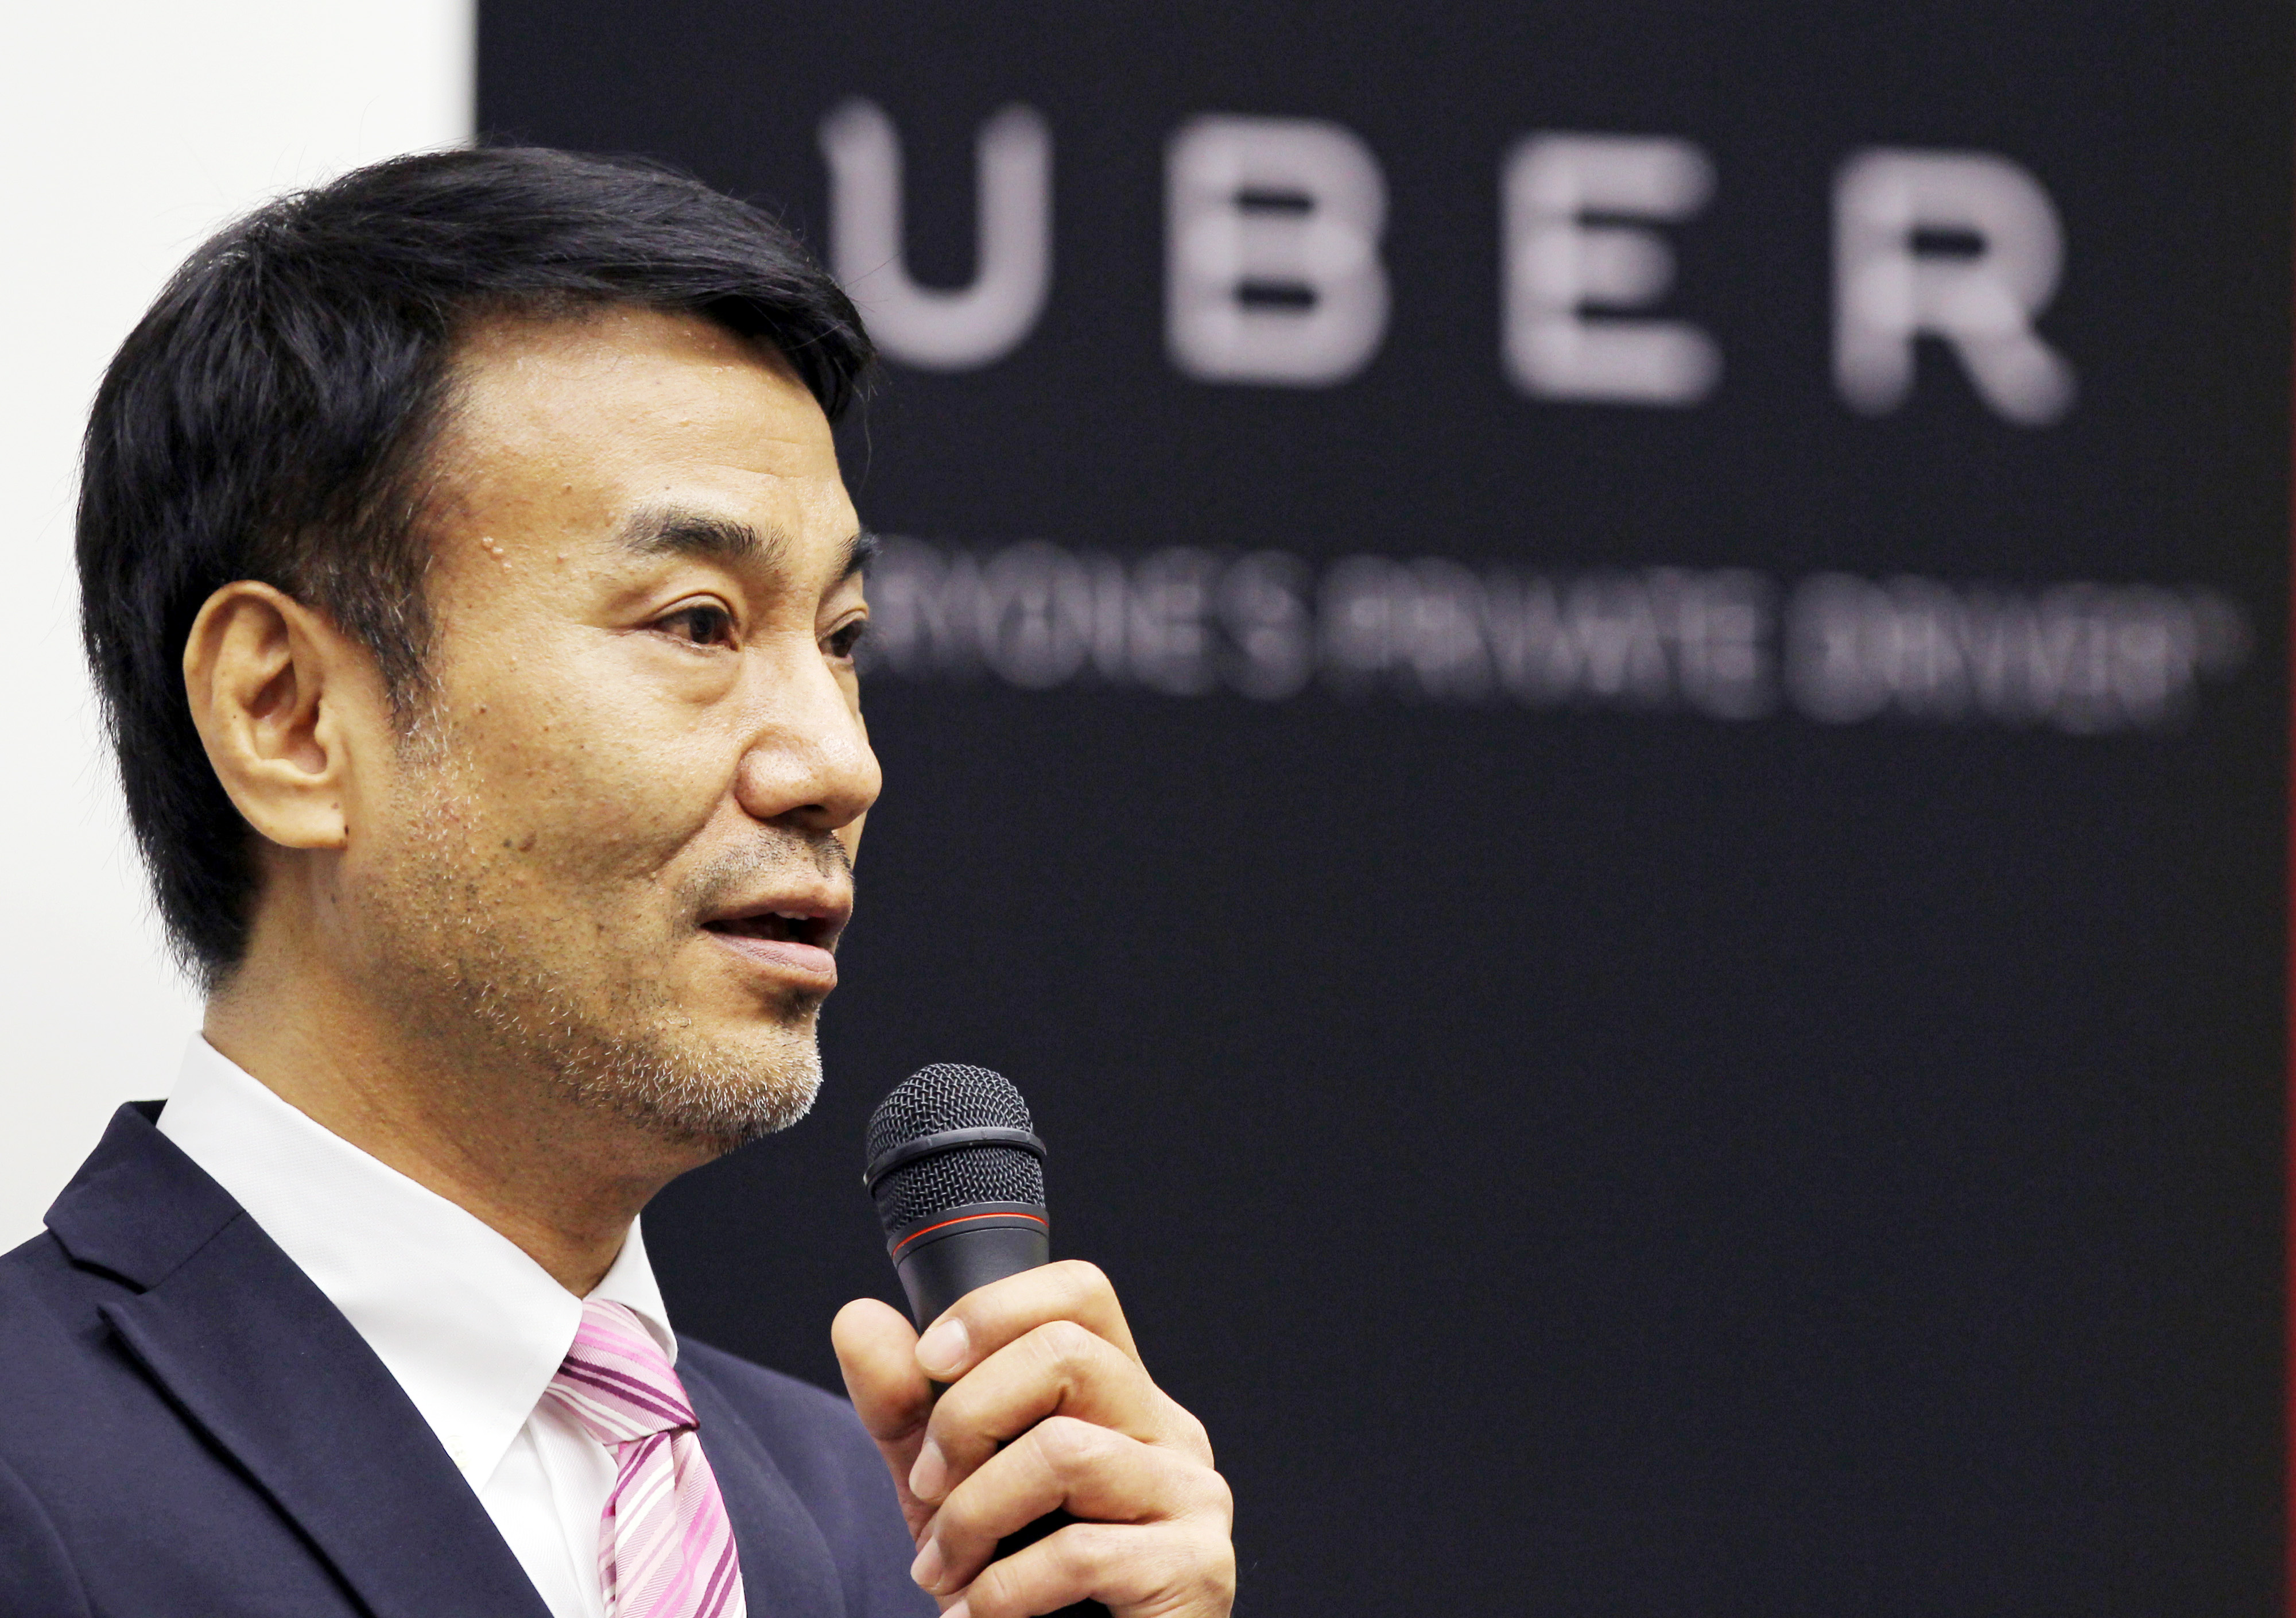 Takeji  Tak  Shiohama, president of Uber Japan Co., speaks at a news conference in Tokyo, on March 3, 2014.